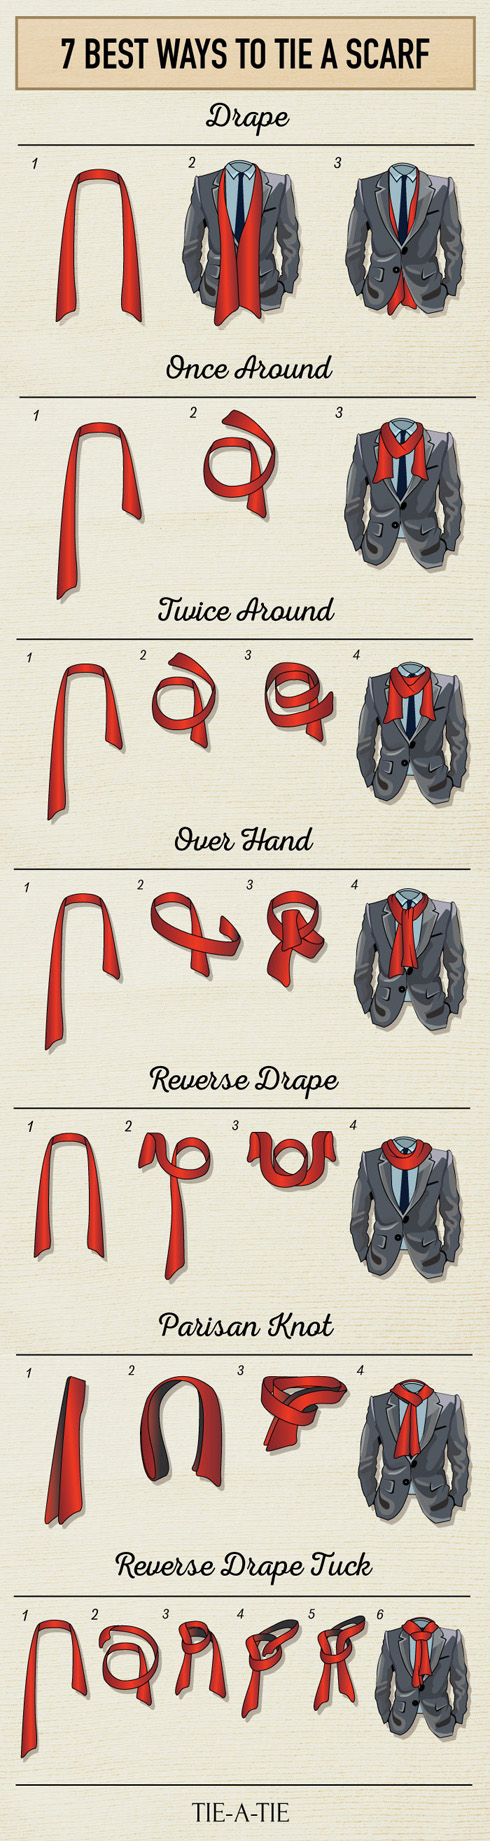 7 Best ways to Tie a Men's Scarf from Tie-a-Tie. Next time it is cool out, don't forget your scarf and tie it in one of these fancy manly ways. 7 Best Ways to Tie a Men's Scarf via tipsaholic.com #scarf #men #tieascarf #scarves